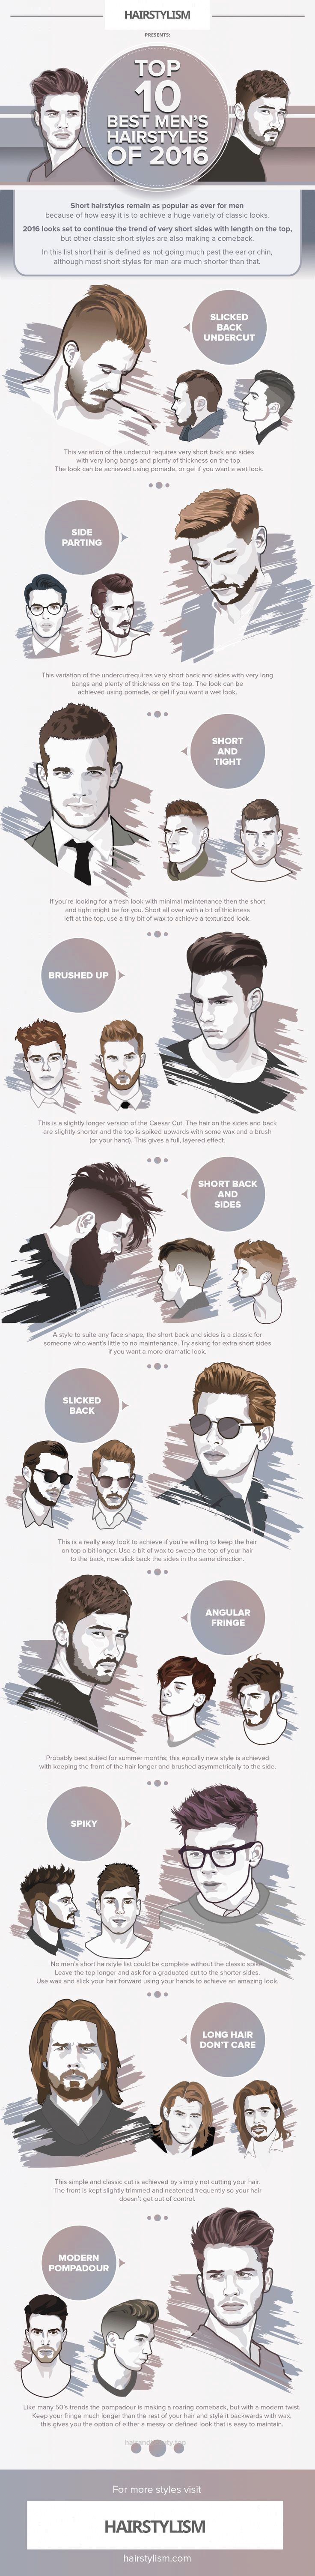 22 best Men\'s Hairstyles images on Pinterest   Male haircuts, Men ...